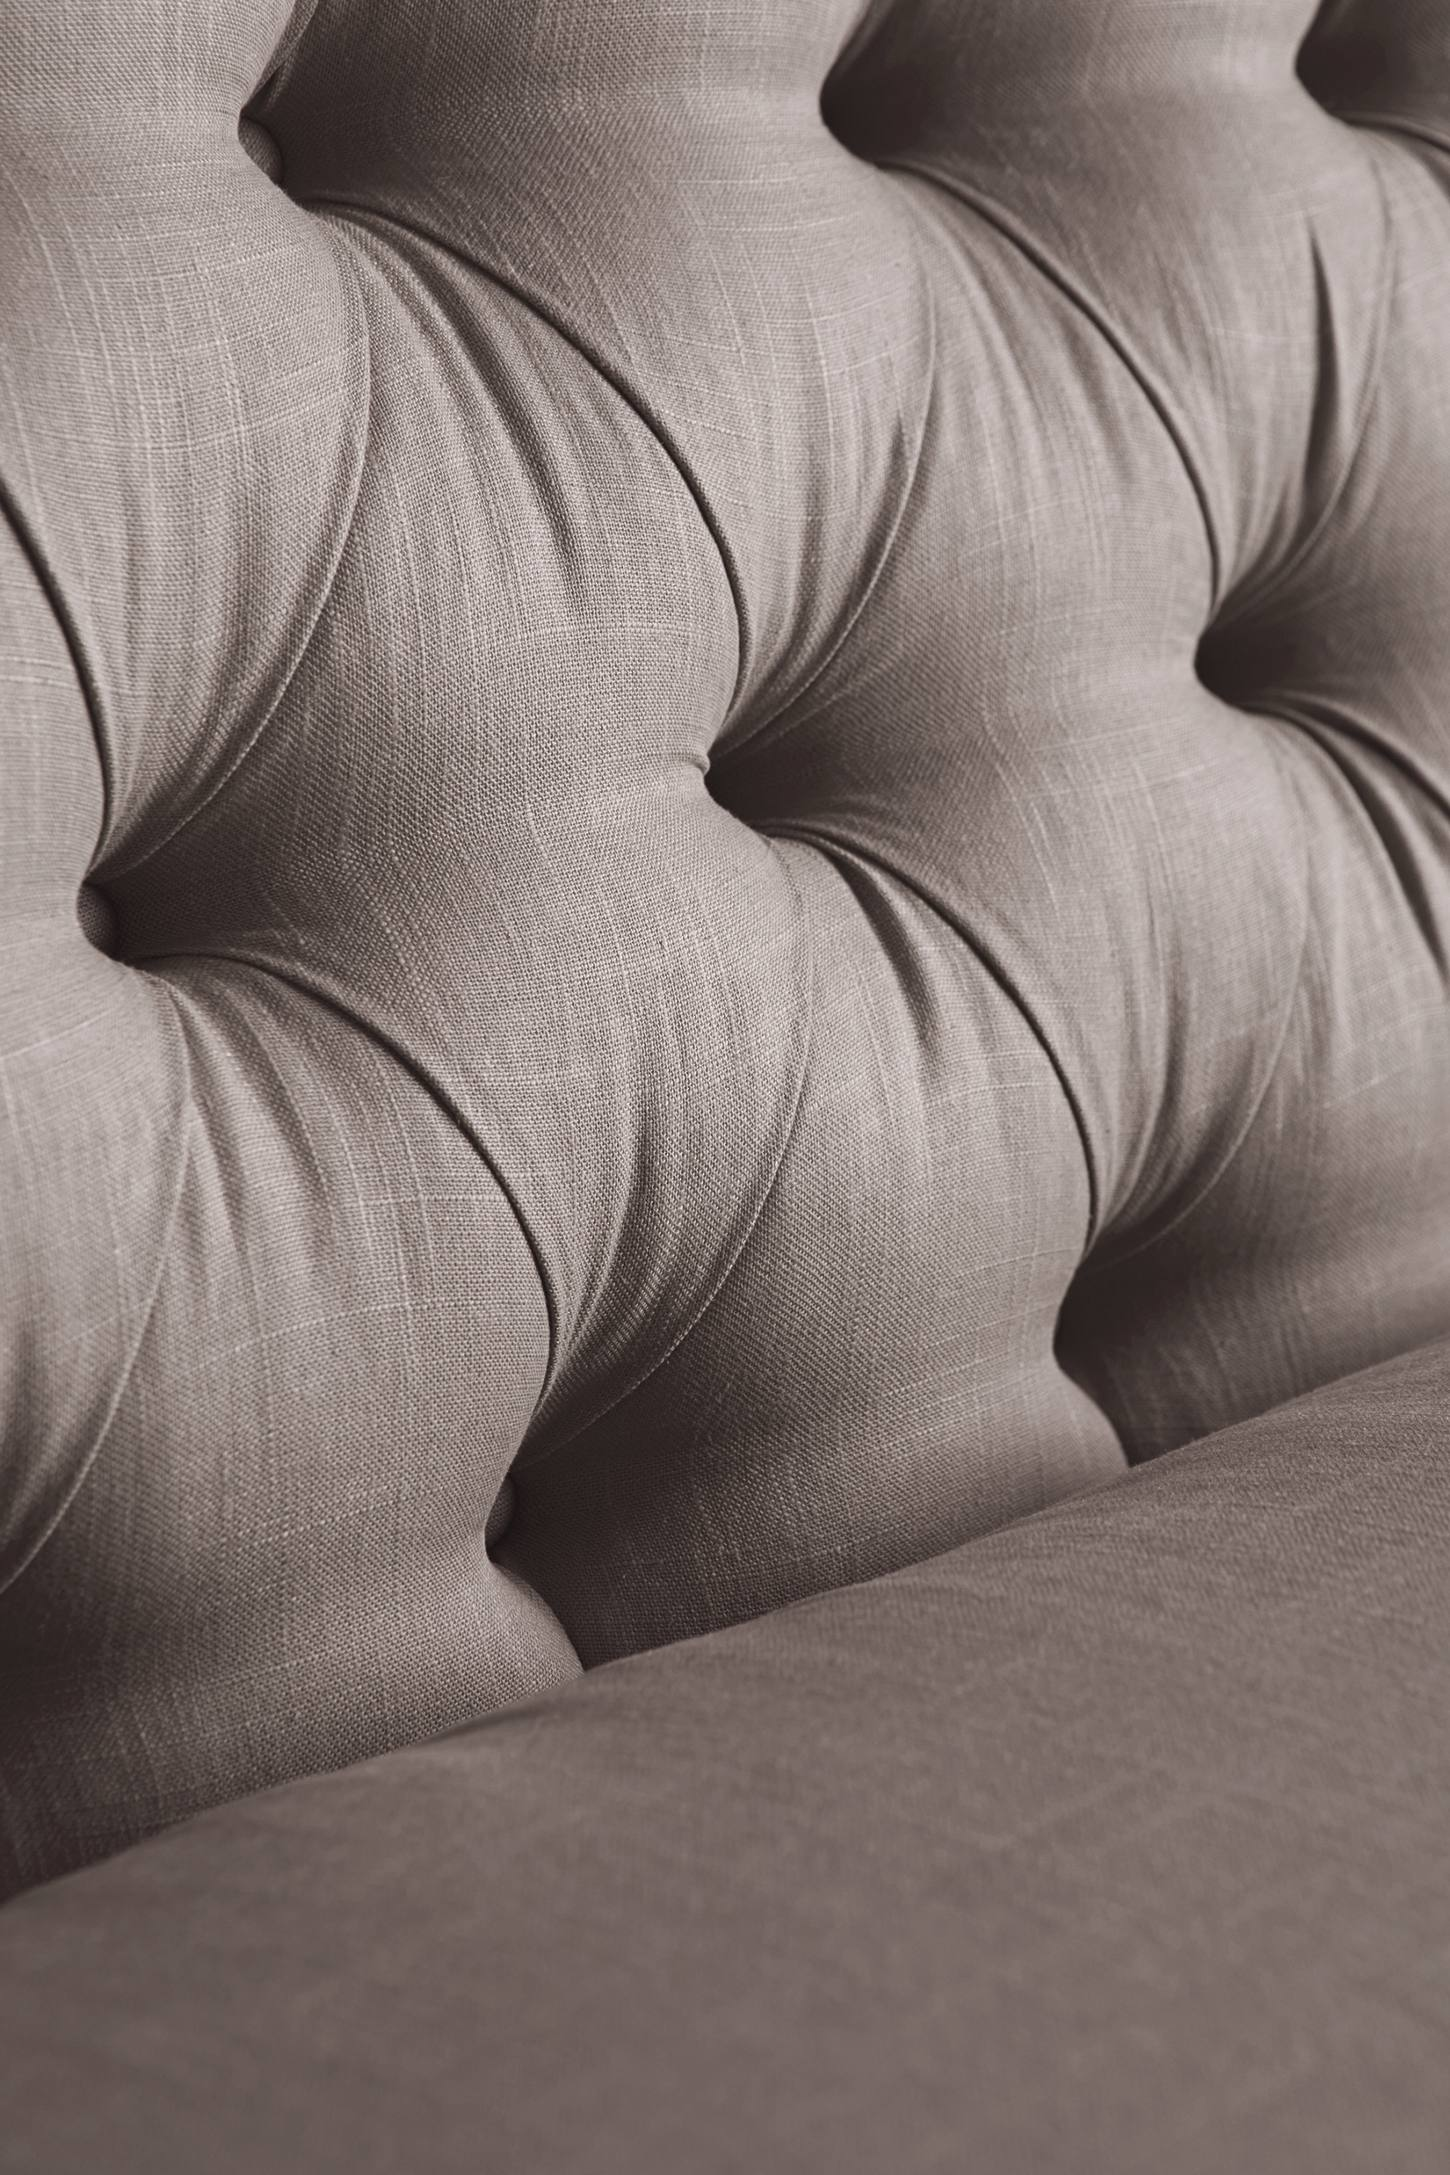 Slide View: 4: Belgian Linen Lyre Chesterfield Right Sectional, Wilcox